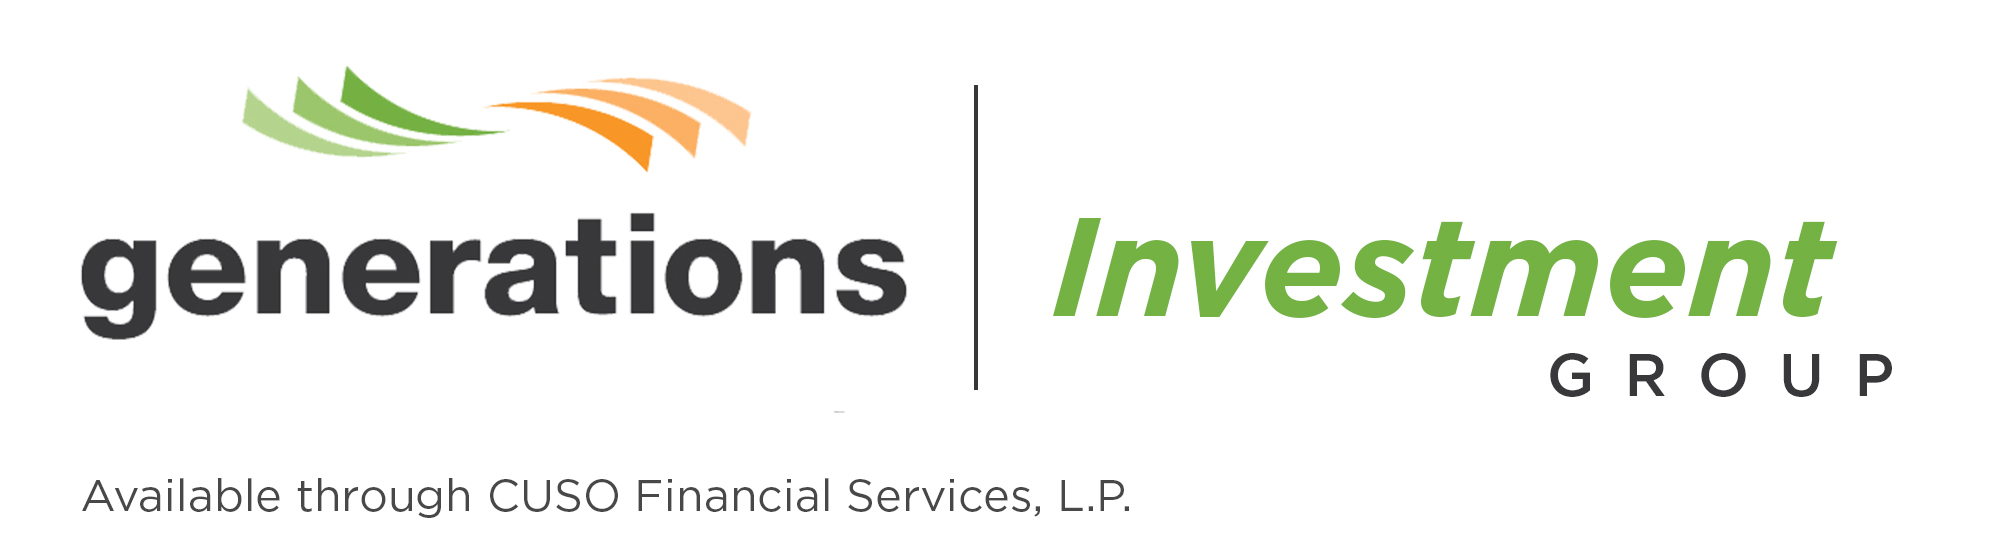 Cfs Investment Group 24